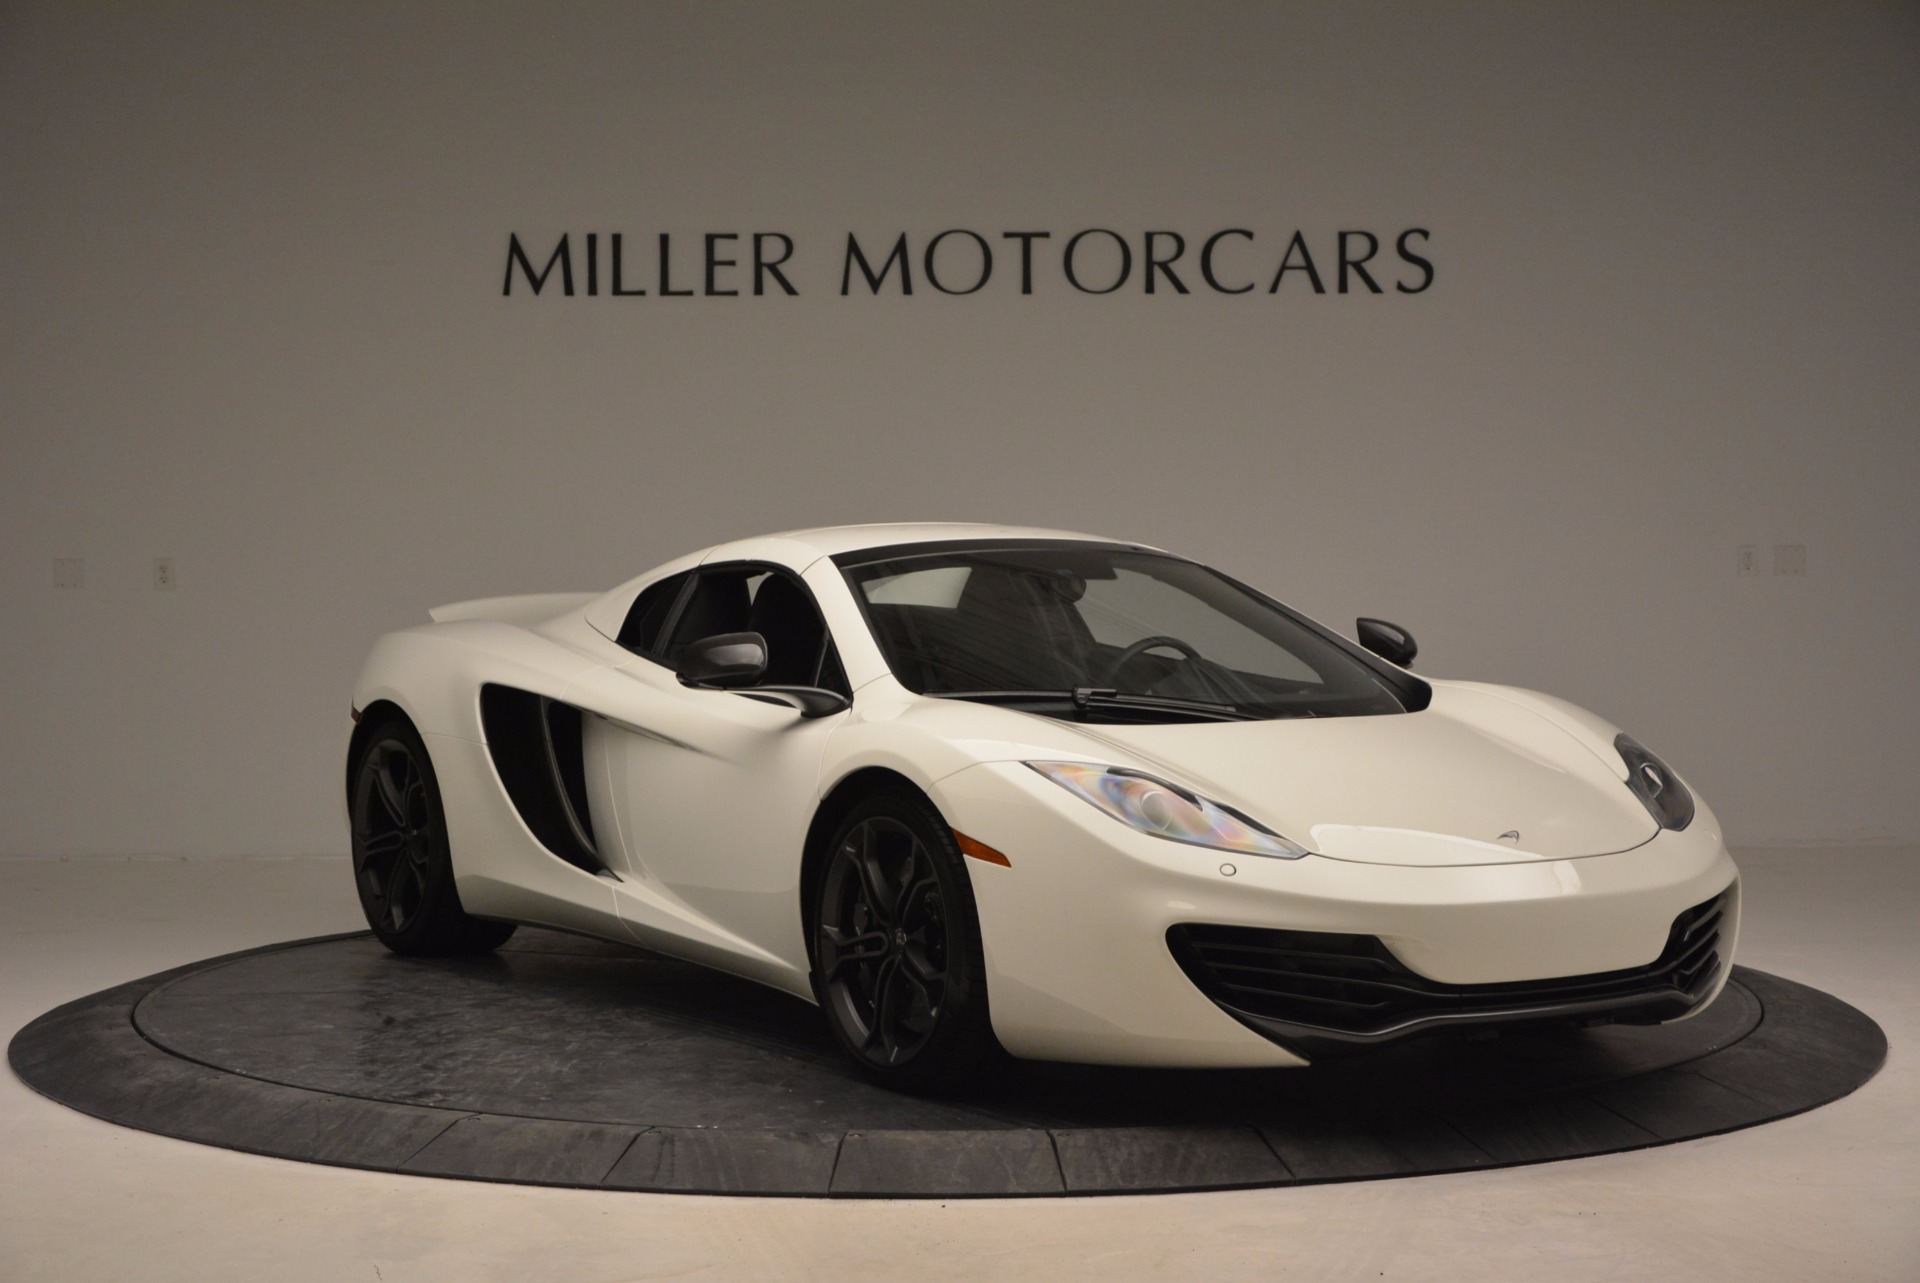 Used 2014 McLaren MP4-12C Spider For Sale In Greenwich, CT. Alfa Romeo of Greenwich, 3136 908_p20